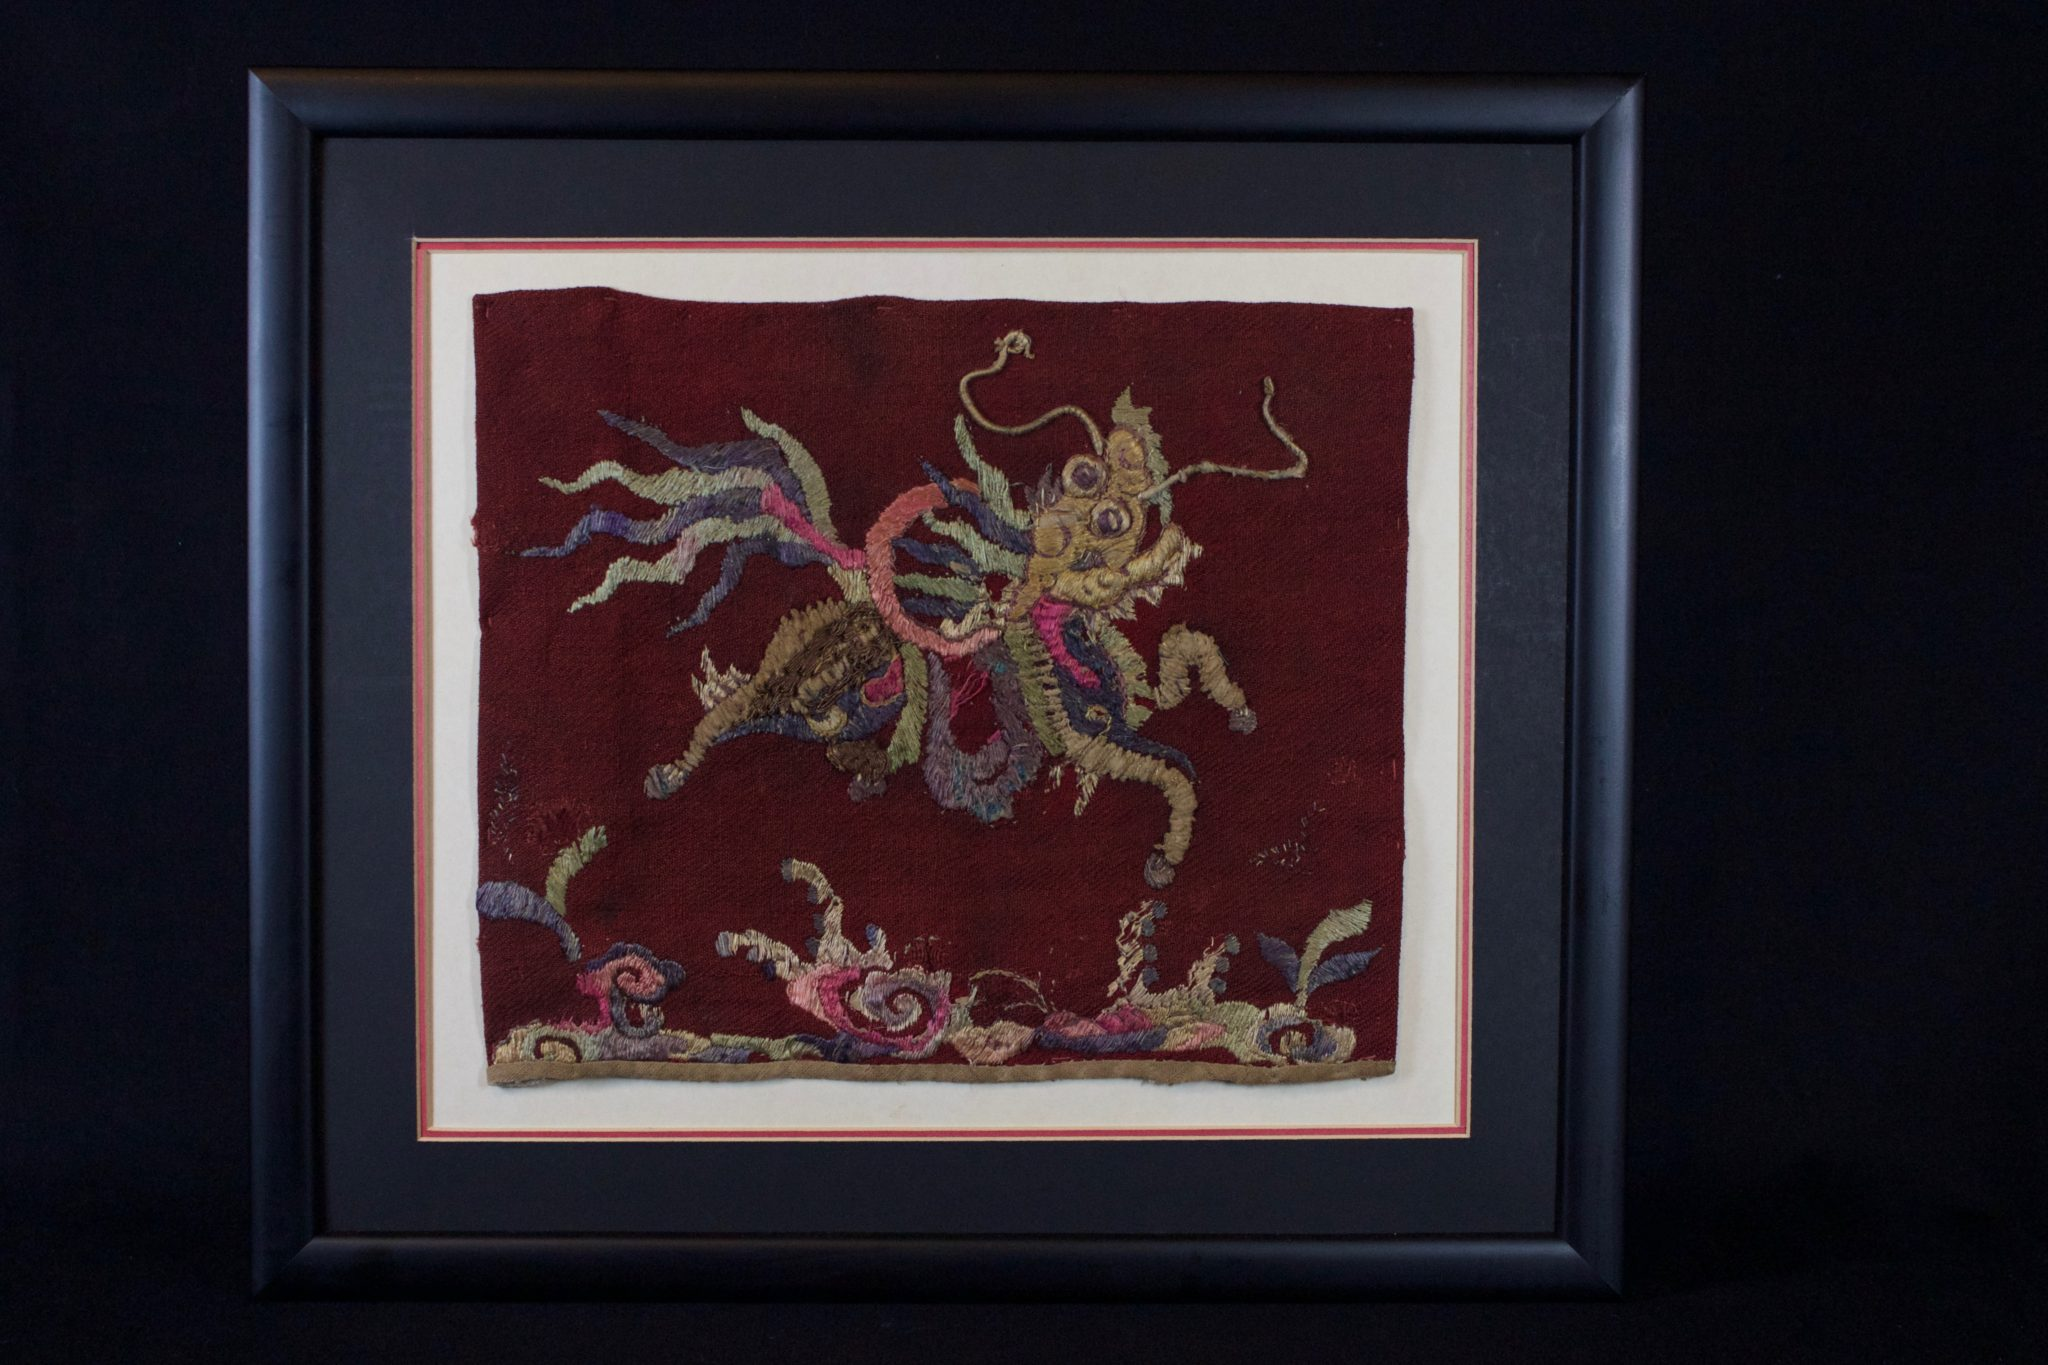 "Sacred Unicorn (Kỳ lân) Panel (rare), Vietnam, Bac Ninh province, Mid 19th c, Red cotton textile with hand embroidered silk and precious-metal-wrapped thread. One of the four sacred animals, the unicorn symbolizes purity, happiness and wealth. If the unicorn appears, many good things will happen. It is often hung over the altar table in pagodas, temples or in homes of traditional families. Its strength and faithful nature are desirable for guarding temples and places of worship. Almost all of these pieces from this time period are portrayed in blue, cream and metallic color schemes. Because of its coloring, this panel is unusual and particularly desirable. 15 ½"" x 17 ½"" x ¾"", $590."